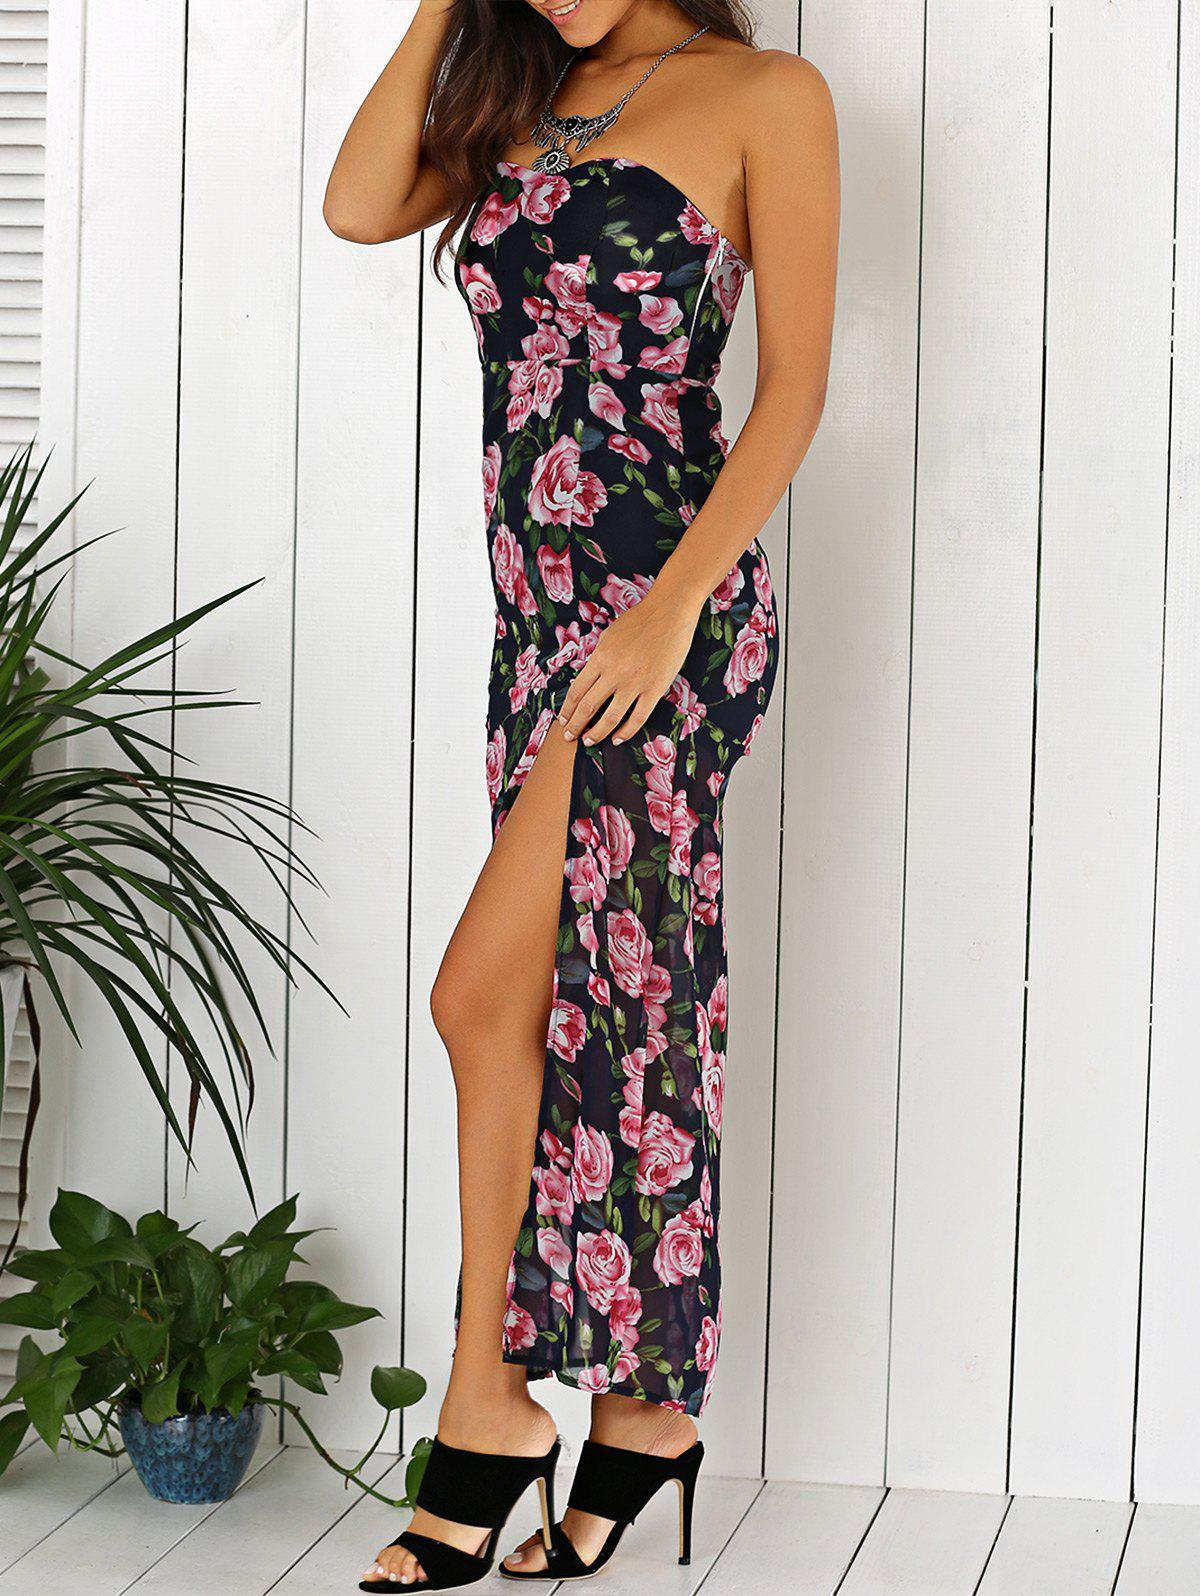 2019 Summer Maxi Floral Print Strapless Dress | Rosegal.com